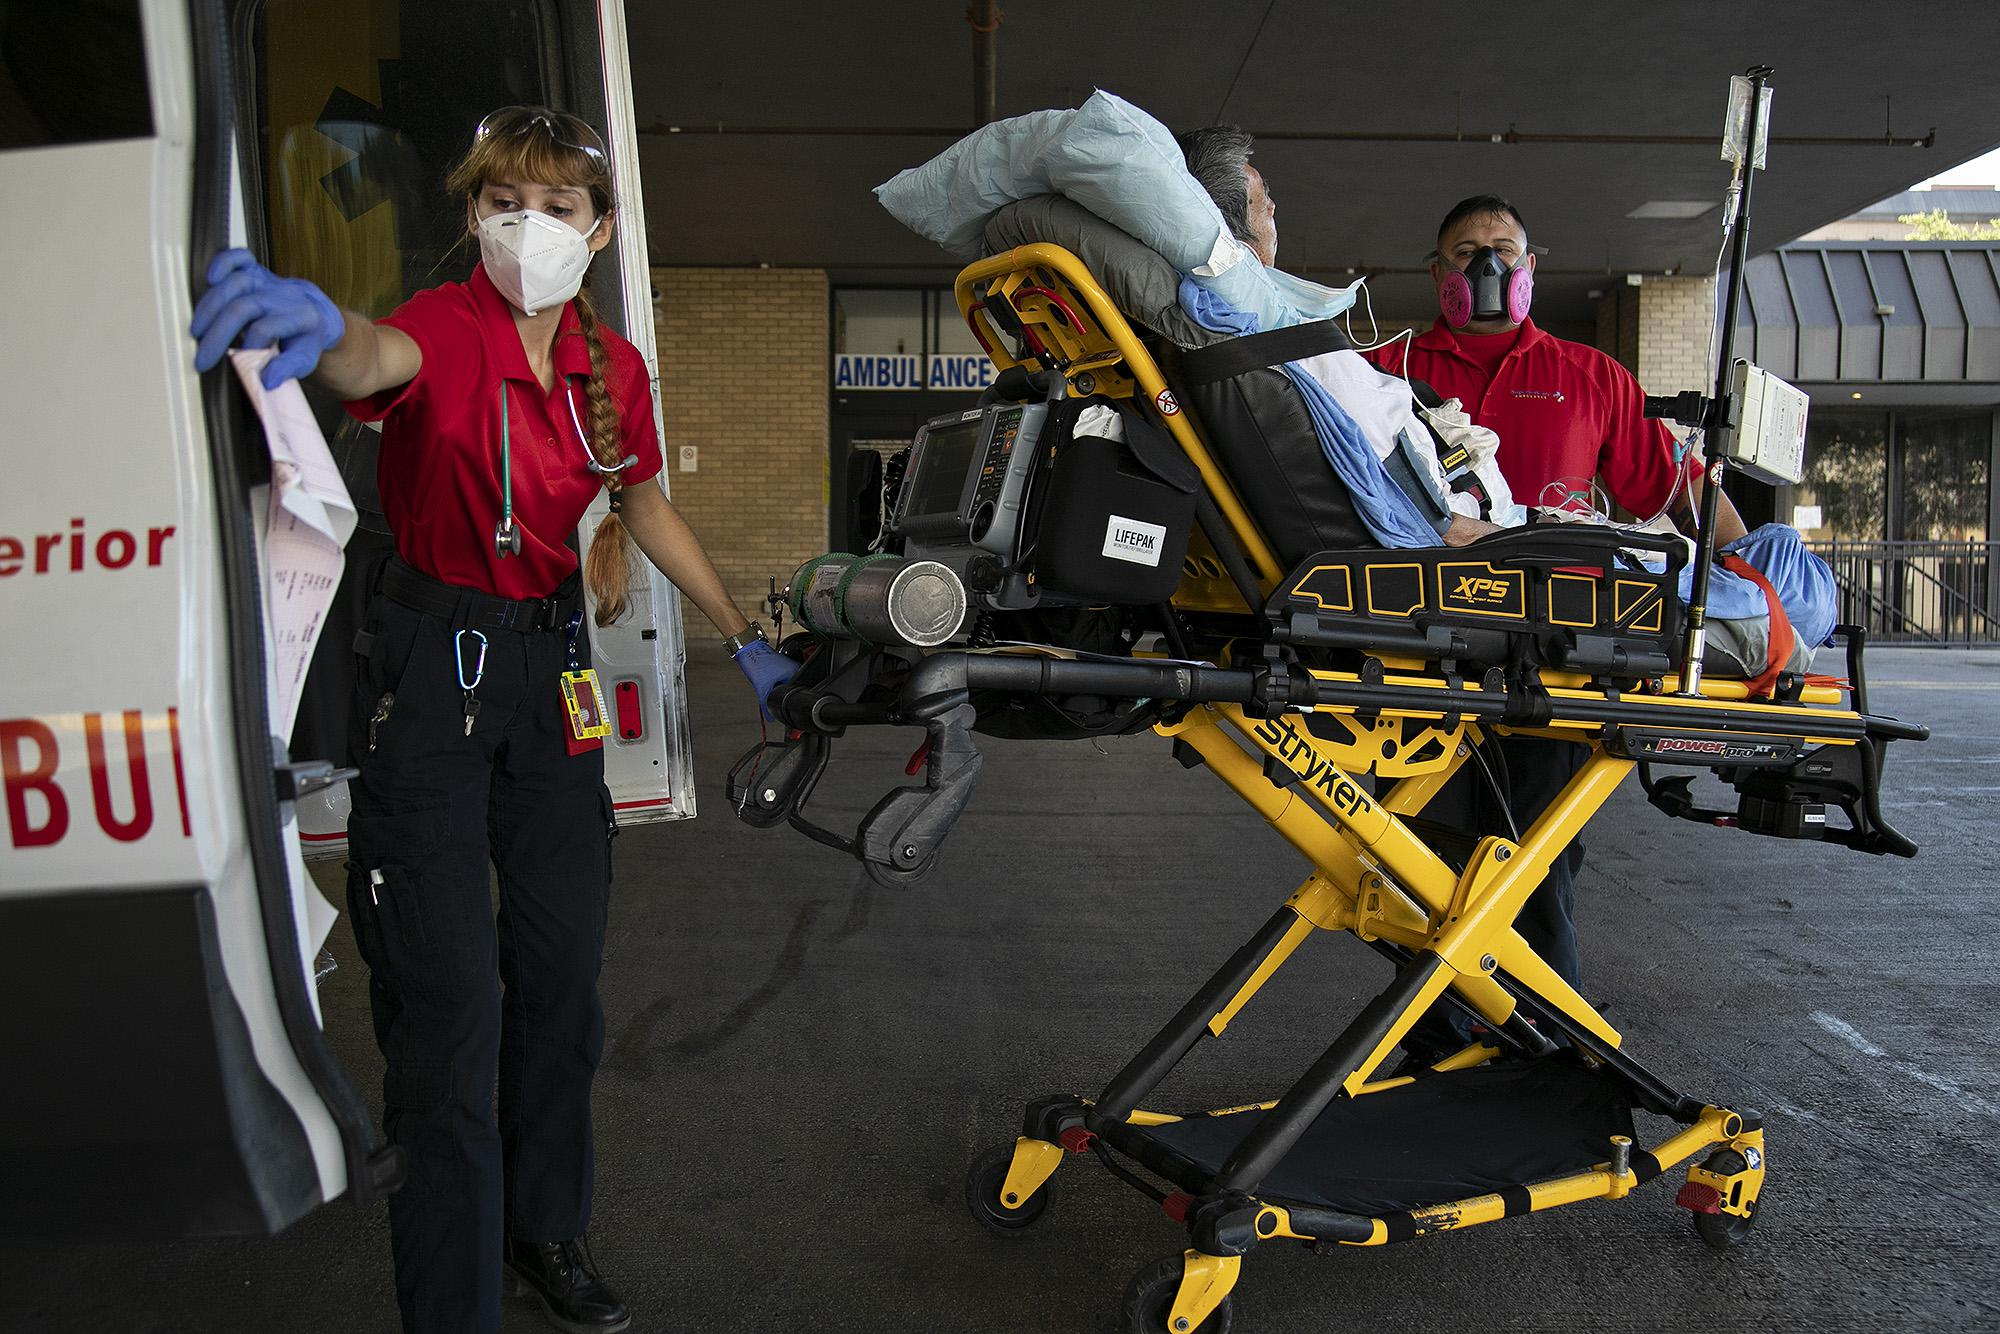 The temperature tops 100 degrees as paramedics Katheryn Wieding and George Lombardo lift a patient out of the ambulance and wheel him into the hospital.